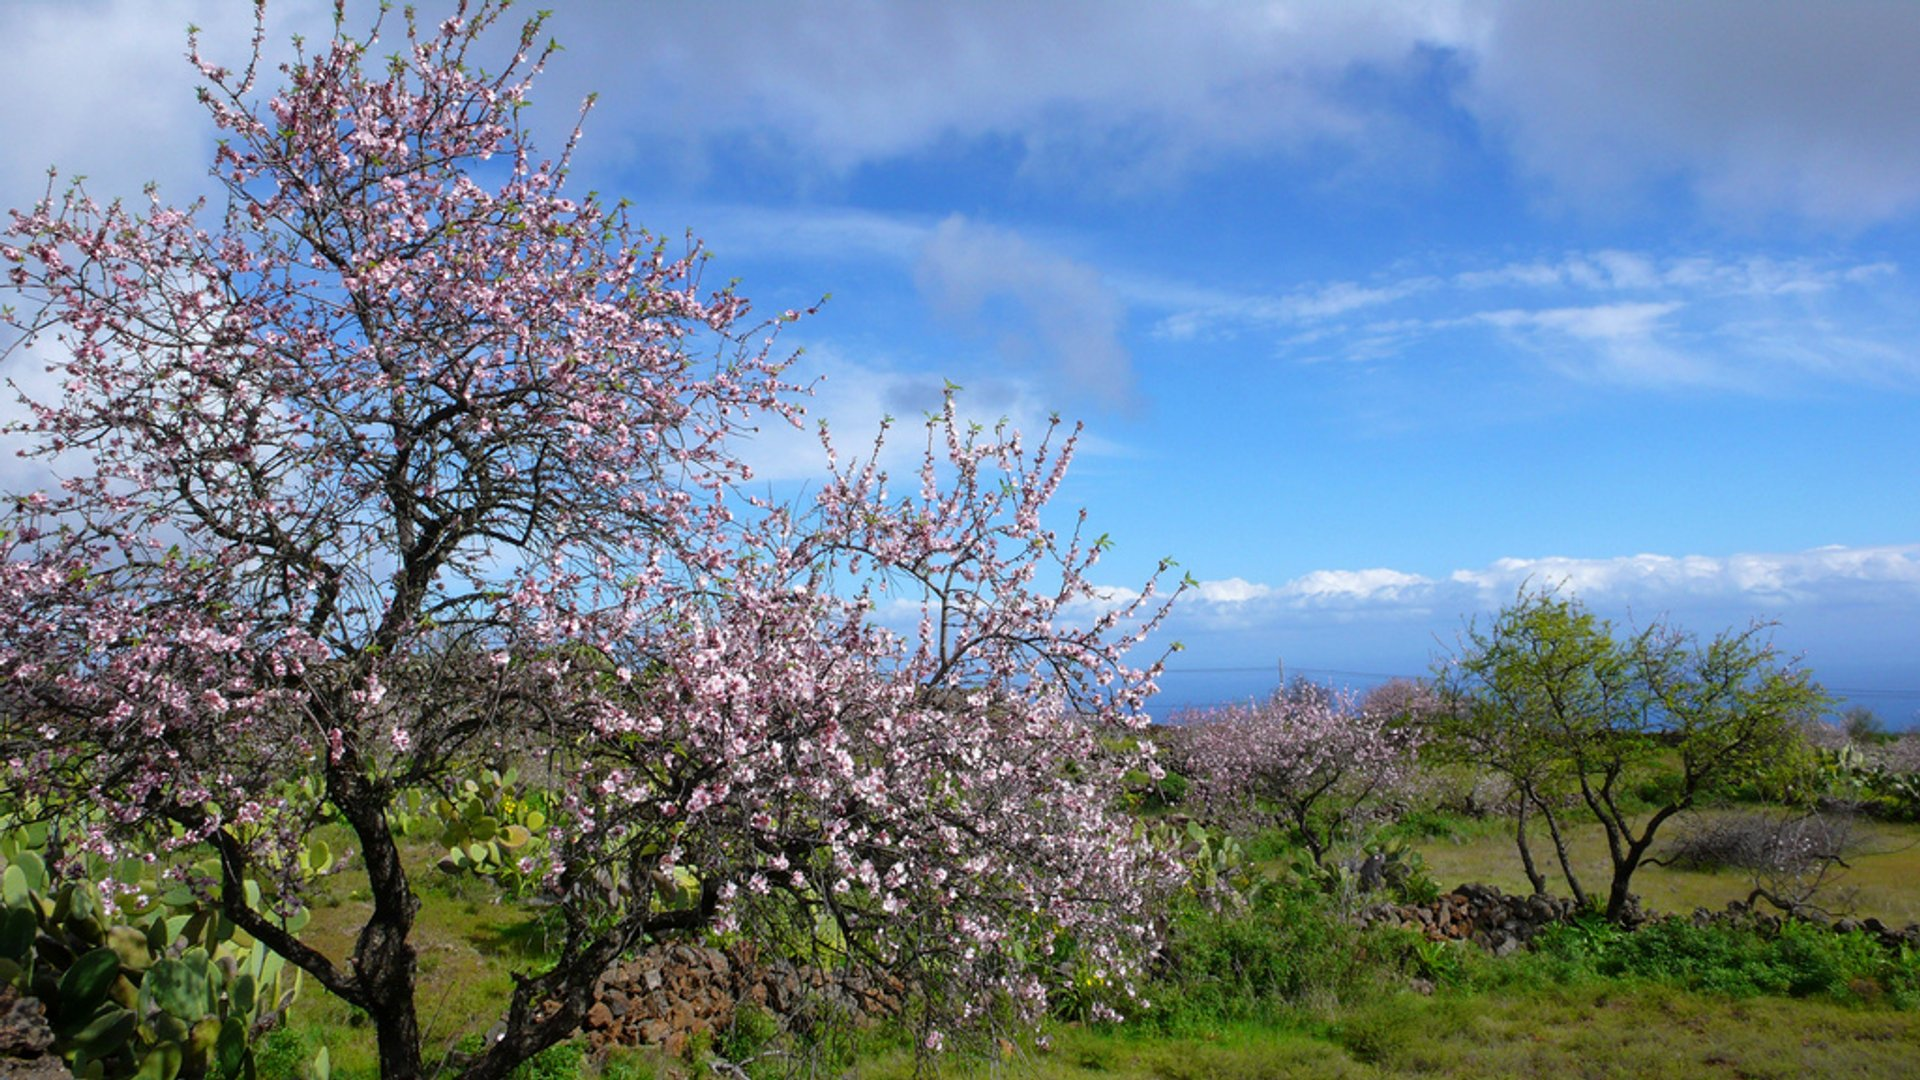 Almond Trees in Bloom in Canary Islands - Best Season